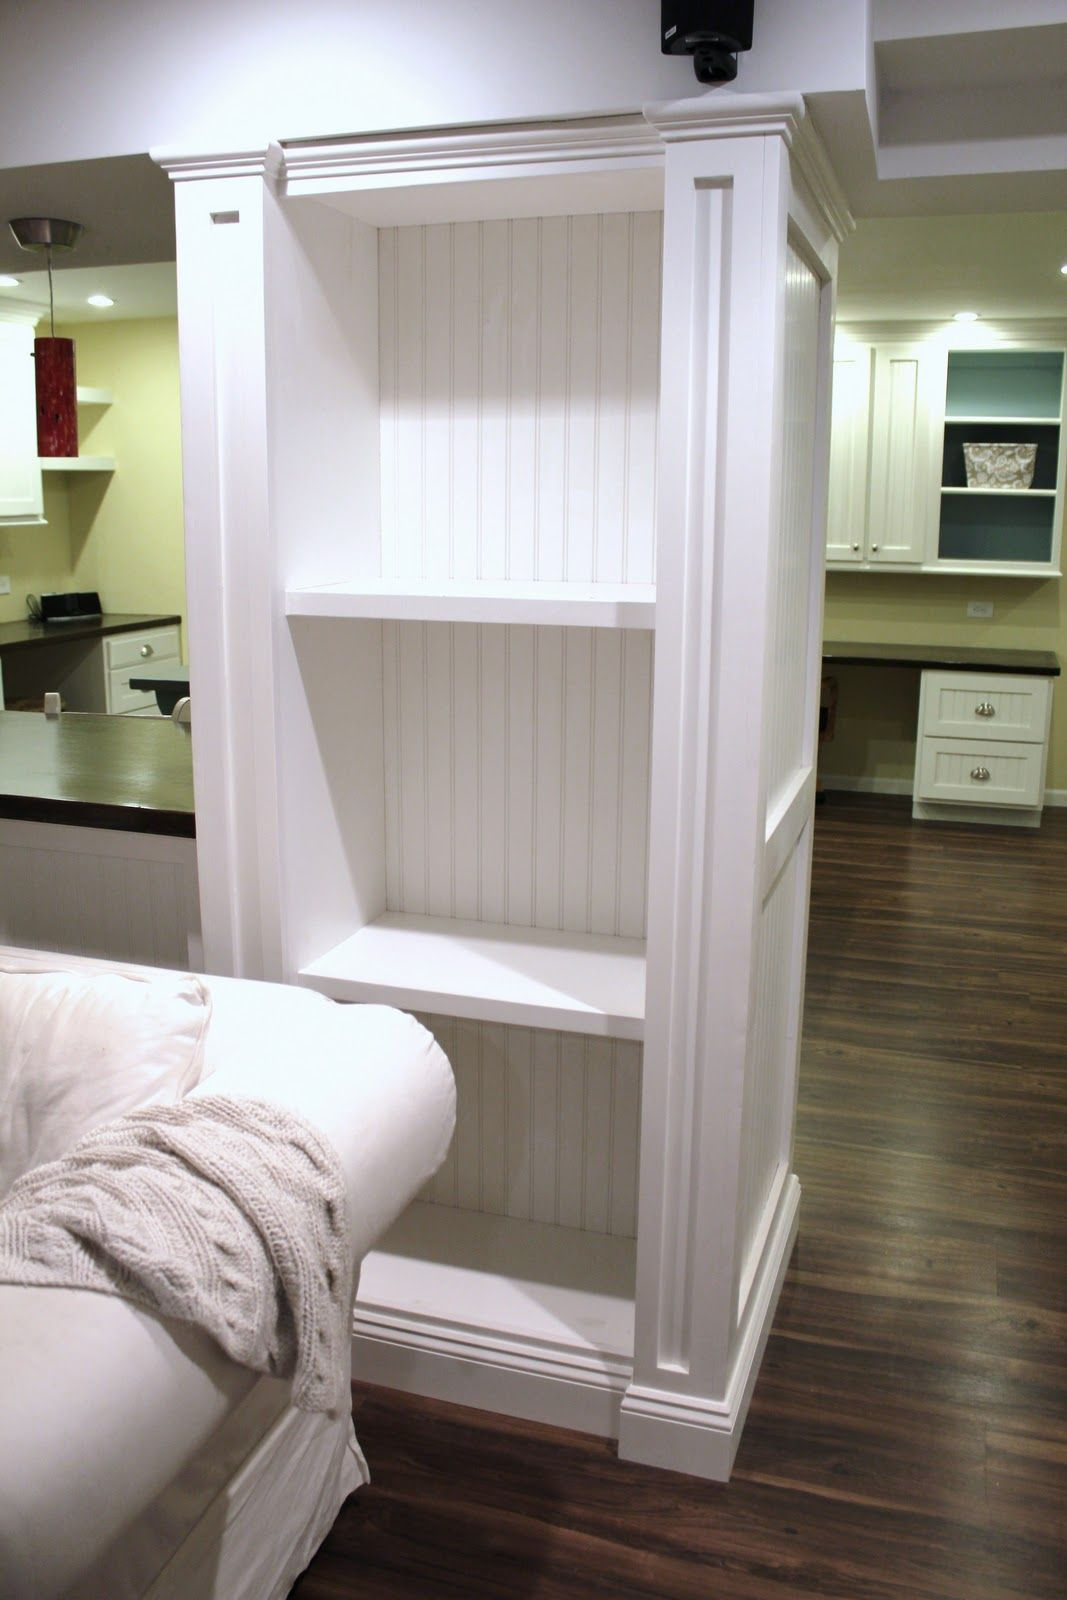 Storage future house projects pinterest load bearing wall